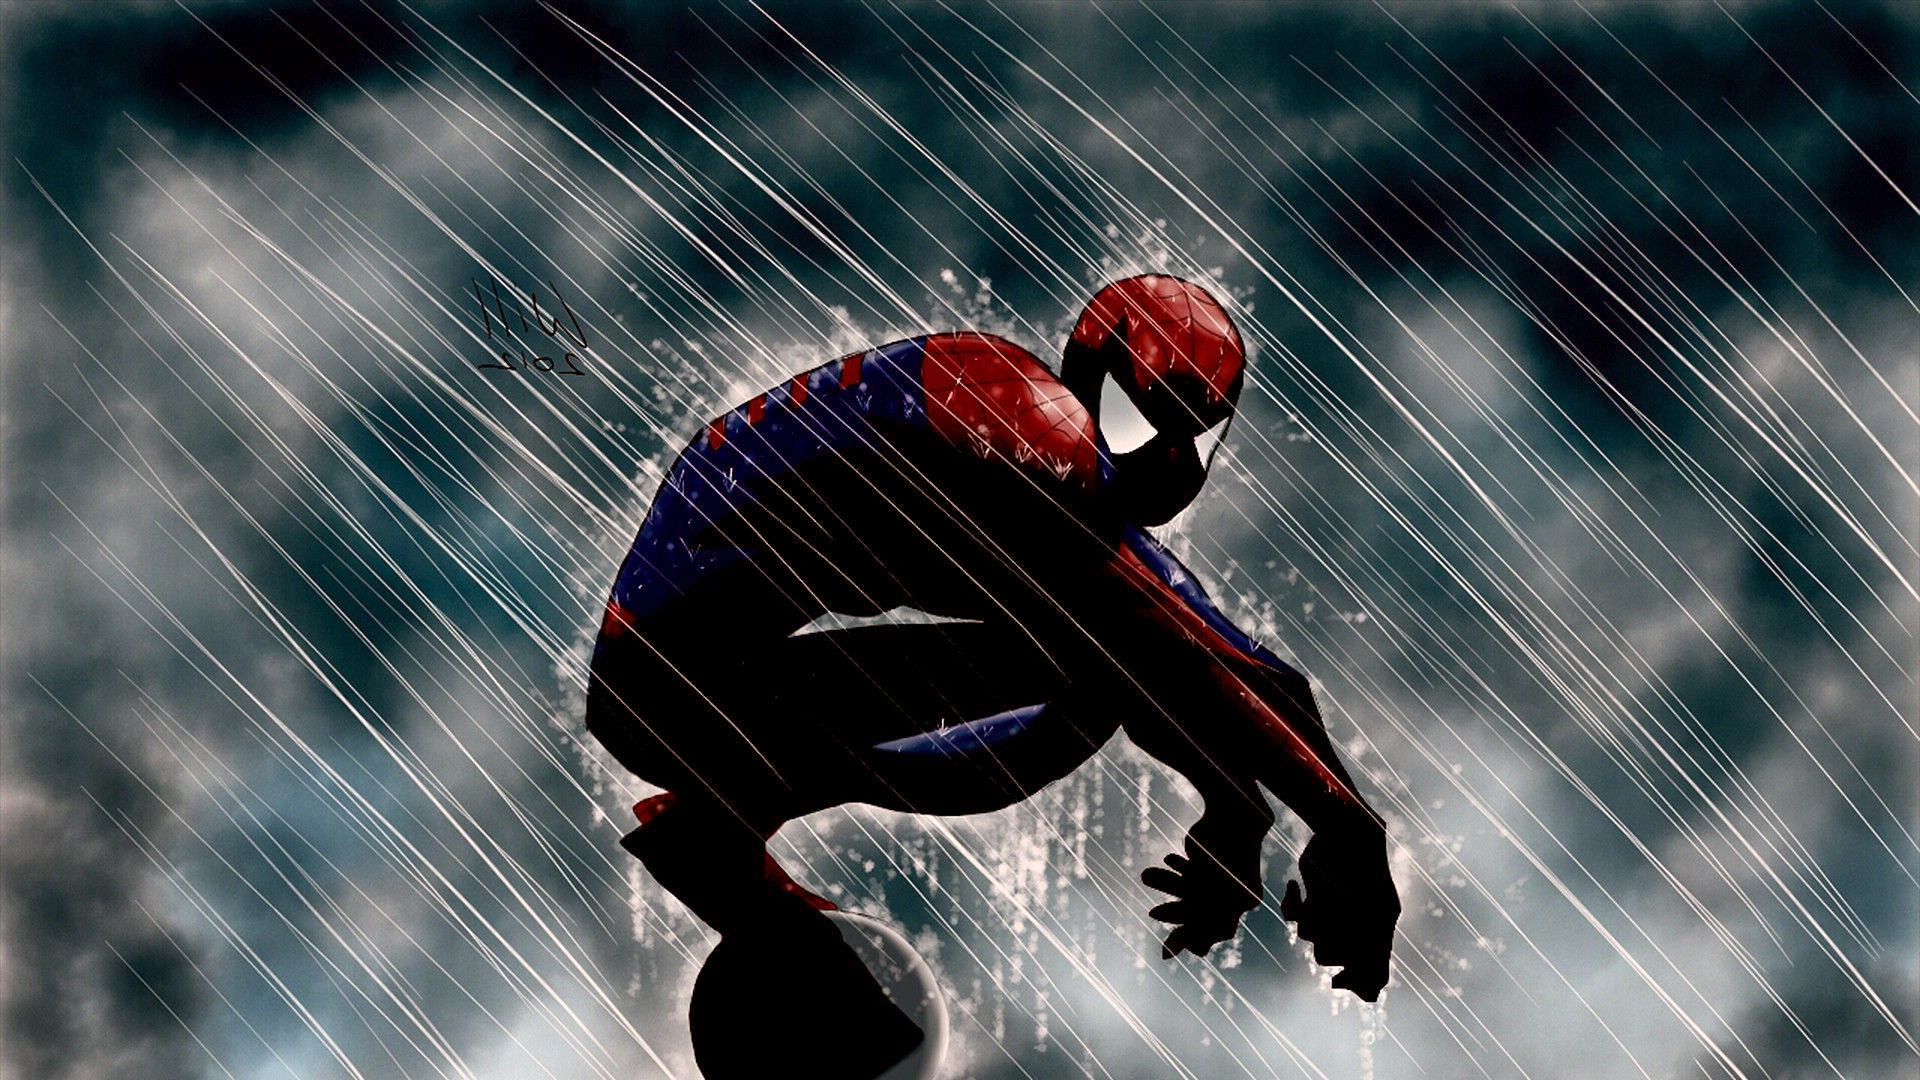 Spiderman 2018 wallpaper 75 images - Spider hd images download ...